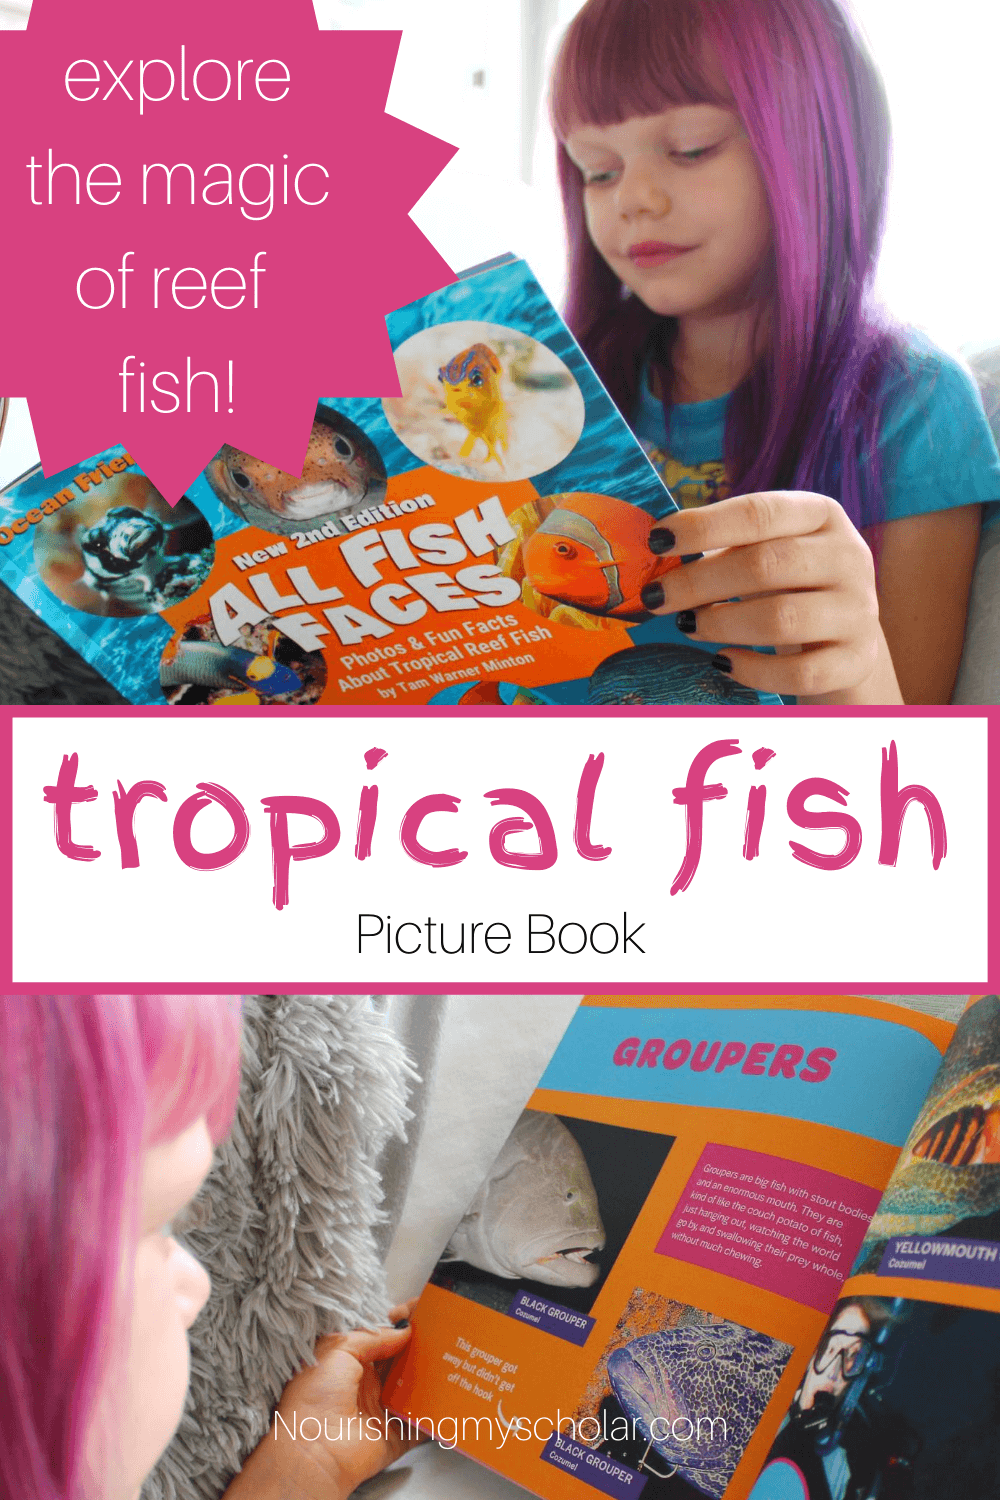 Tropical Fish Picture Book: Get your children excited about our oceans and seas with this incredible tropical fish picture book for kids! #kidlit #picturebooksforkids #teachwithbooks #nonfictionbooksforkids #fishbooksforkids #fishpicturebook